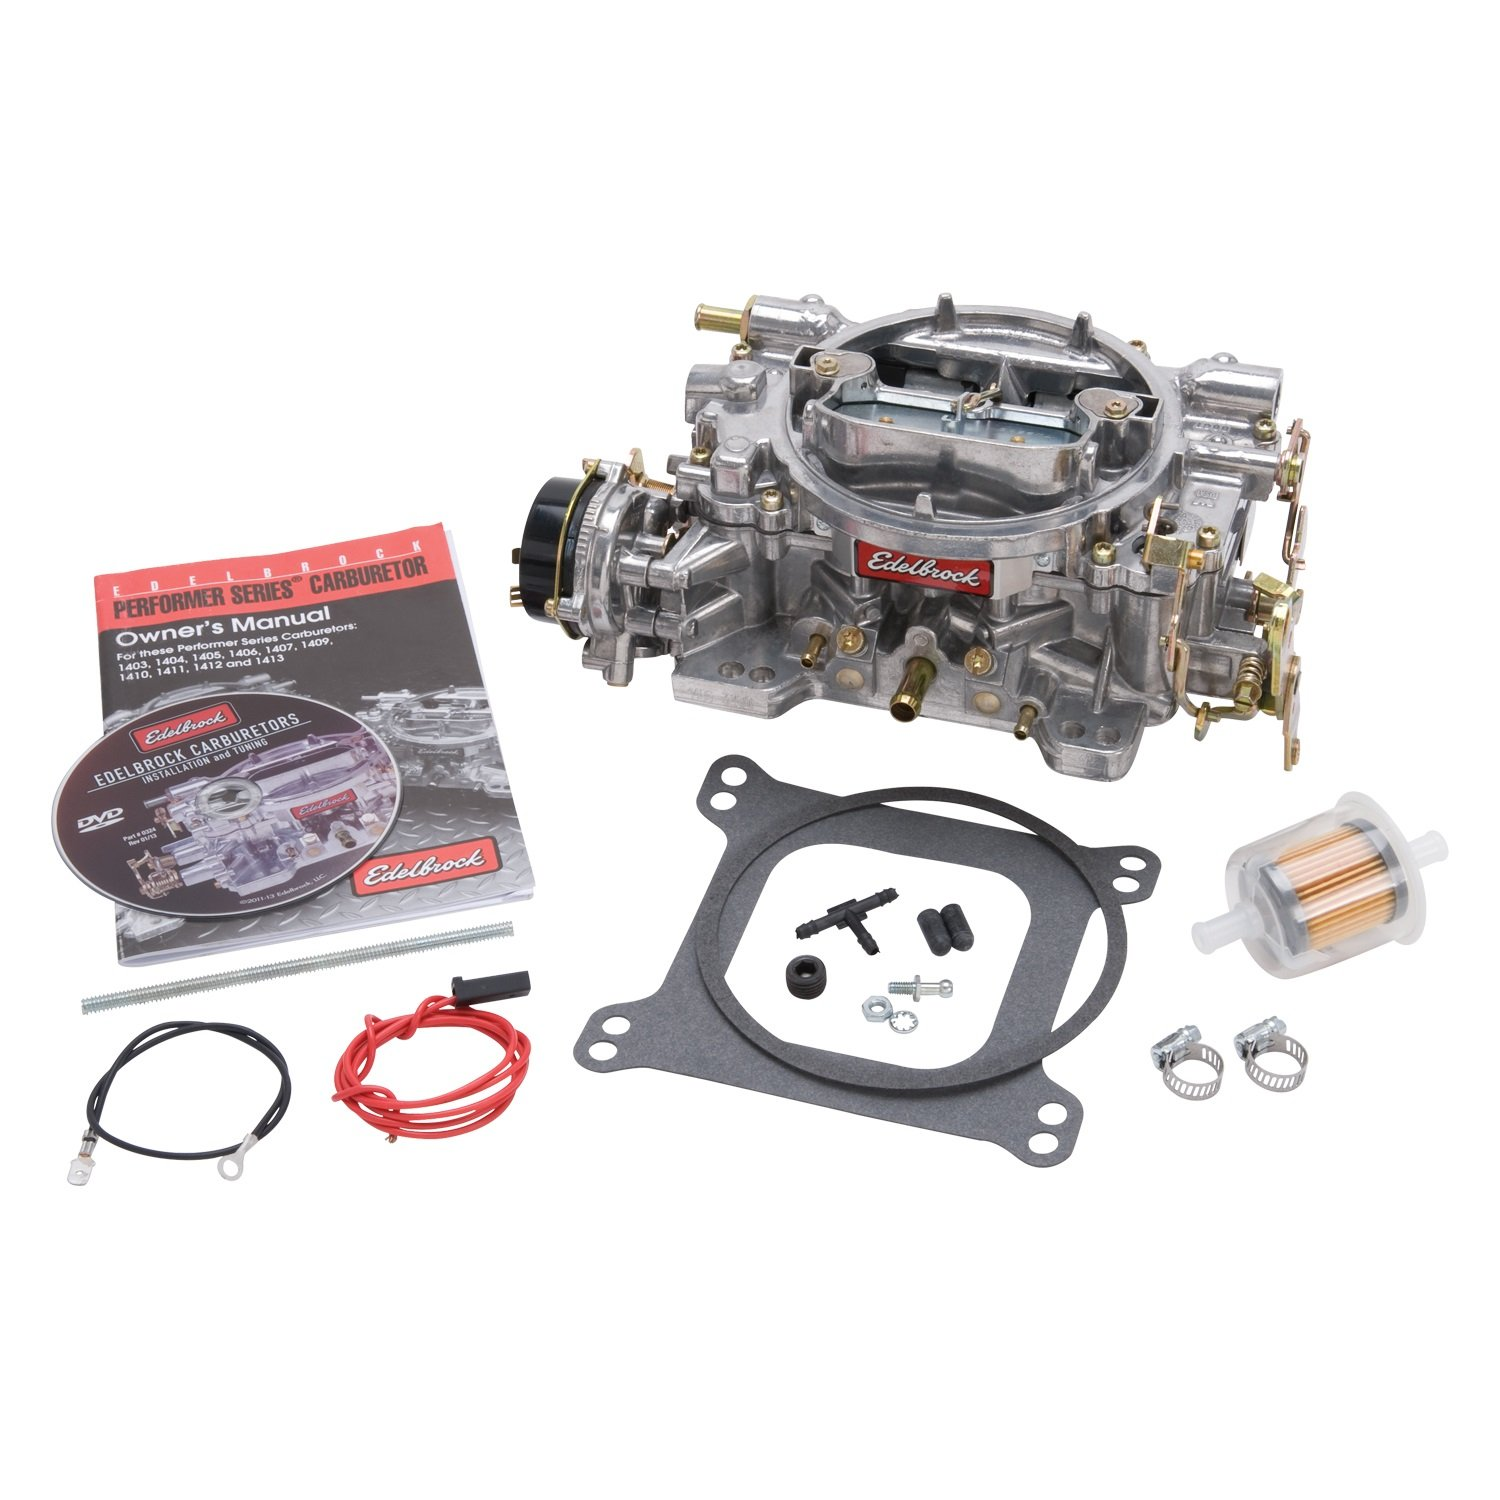 71fObCUq2rL._SL1500_ amazon com edelbrock 1406 performer 600 cfm square bore 4 barrel edelbrock 1406 electric choke wiring diagram at bakdesigns.co